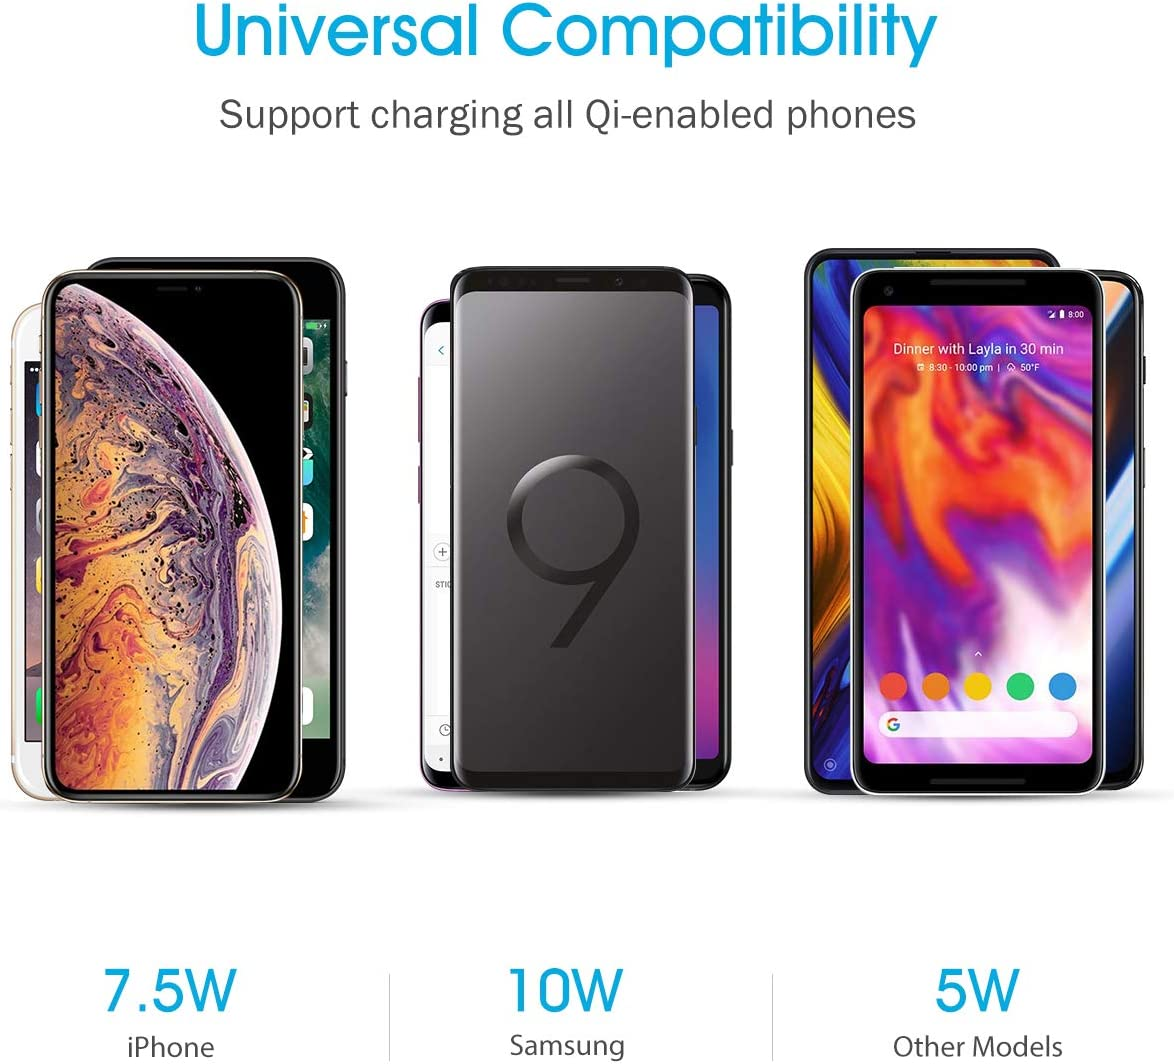 Wireless Charger 10W for Galaxy S10//S9 Seneo Qi Certified Wireless Charging Stand 7.5W Compatible iPhone 11//Pro Max//XS Max//XR//XS//X//8//Plus Note 10//Note 9 No AC Adapter